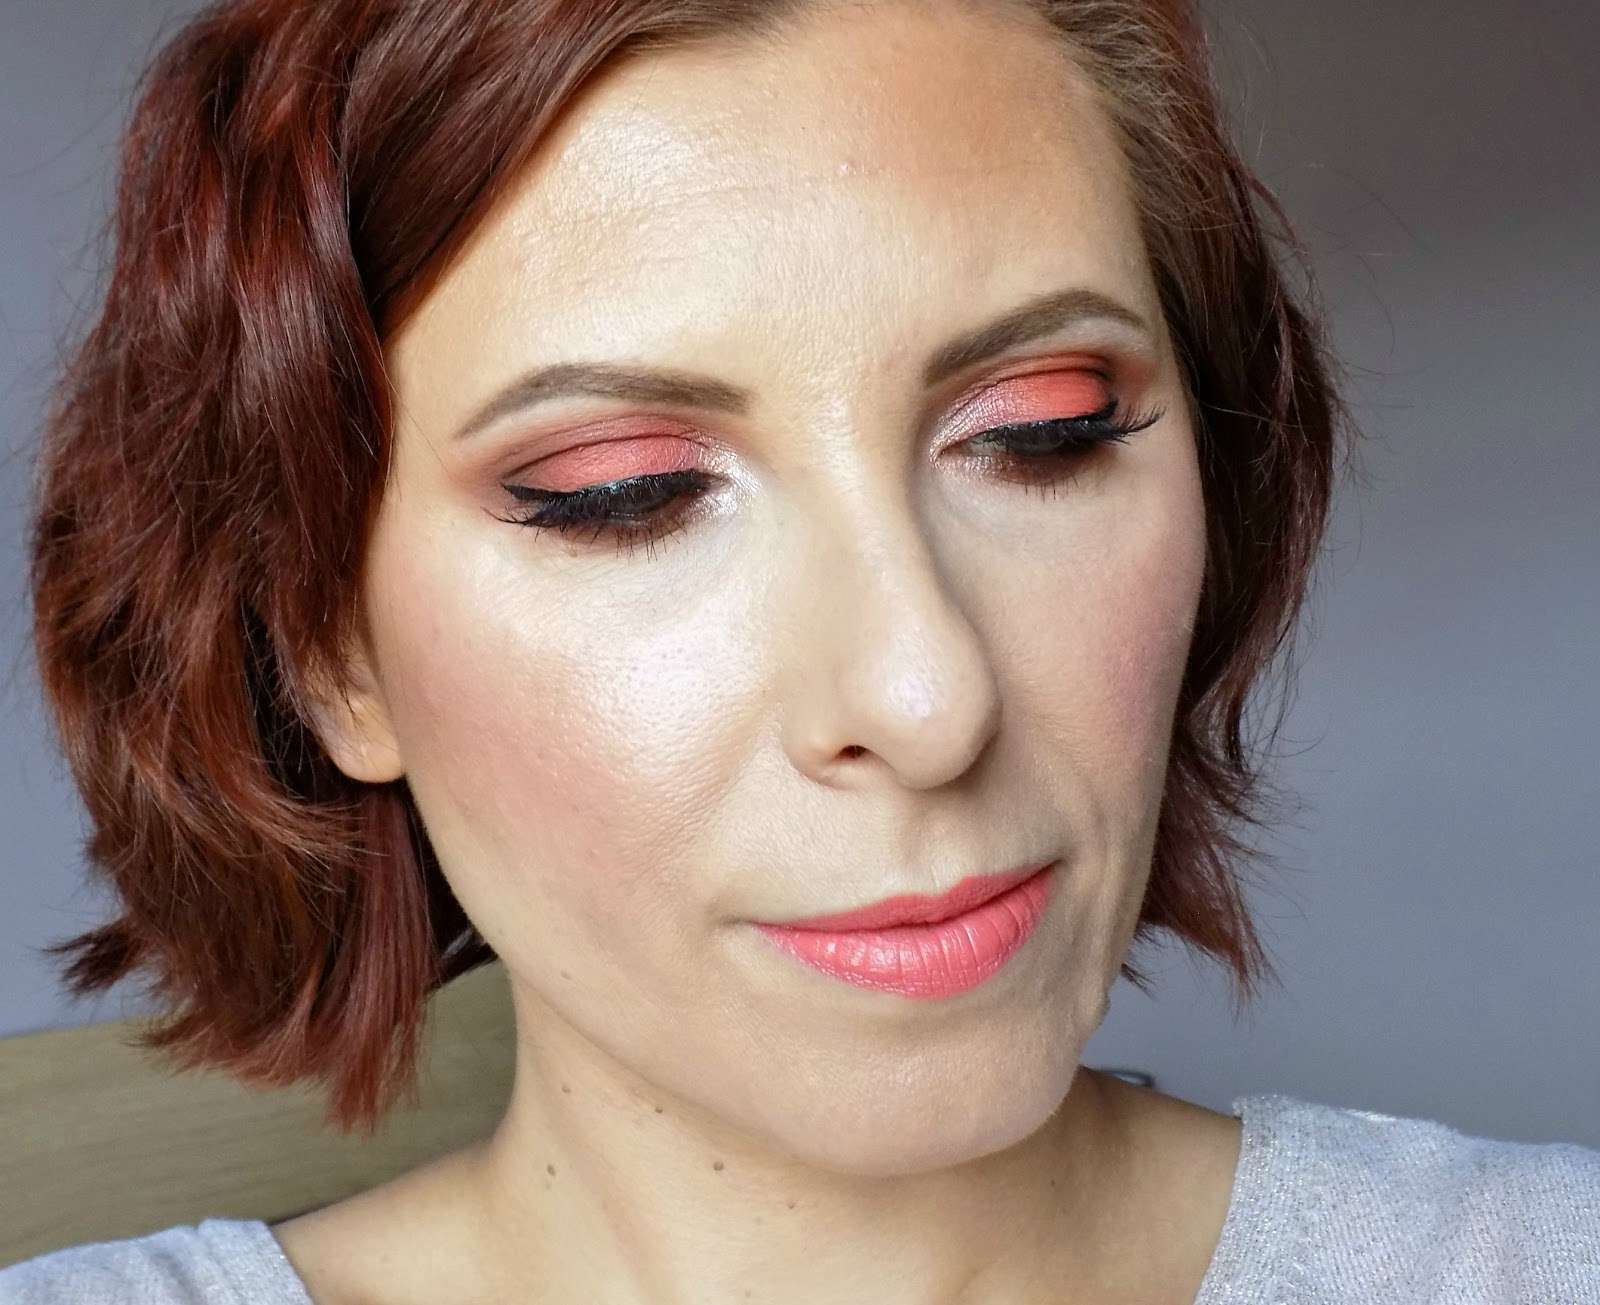 peach-y coral eyes and lips makeup look, feat. Morphe Brushes 35O palette